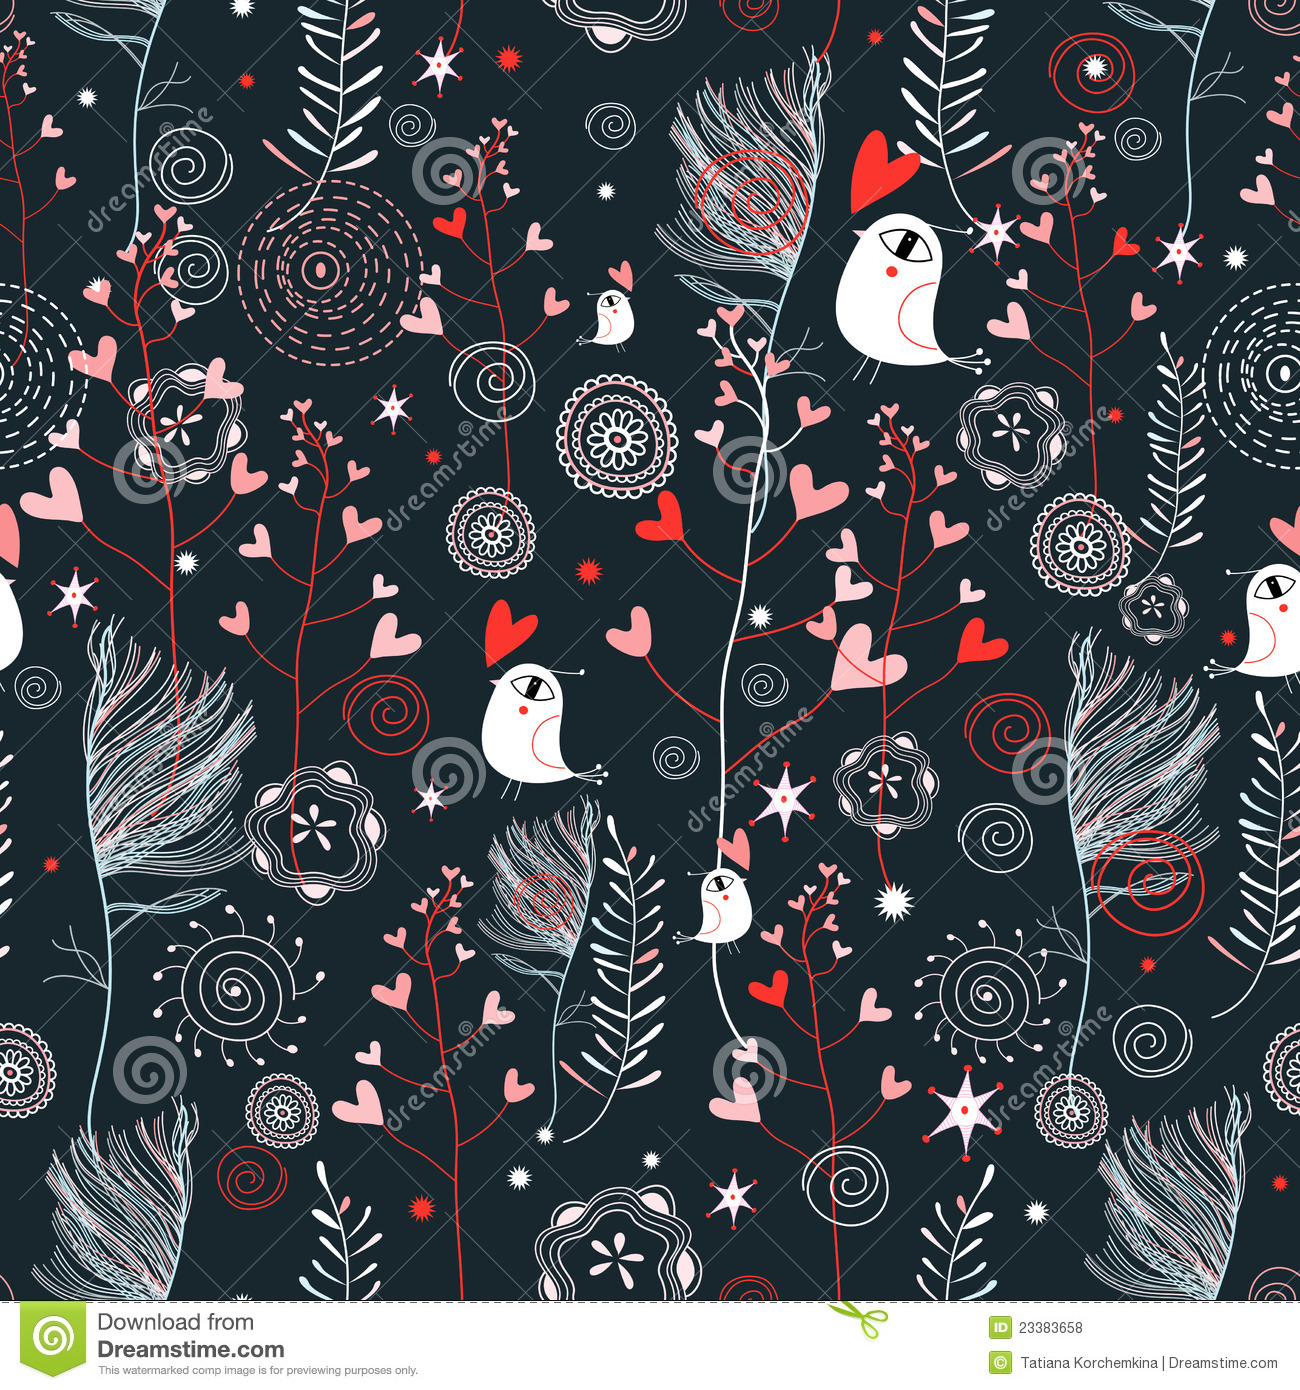 Floral pattern with hearts